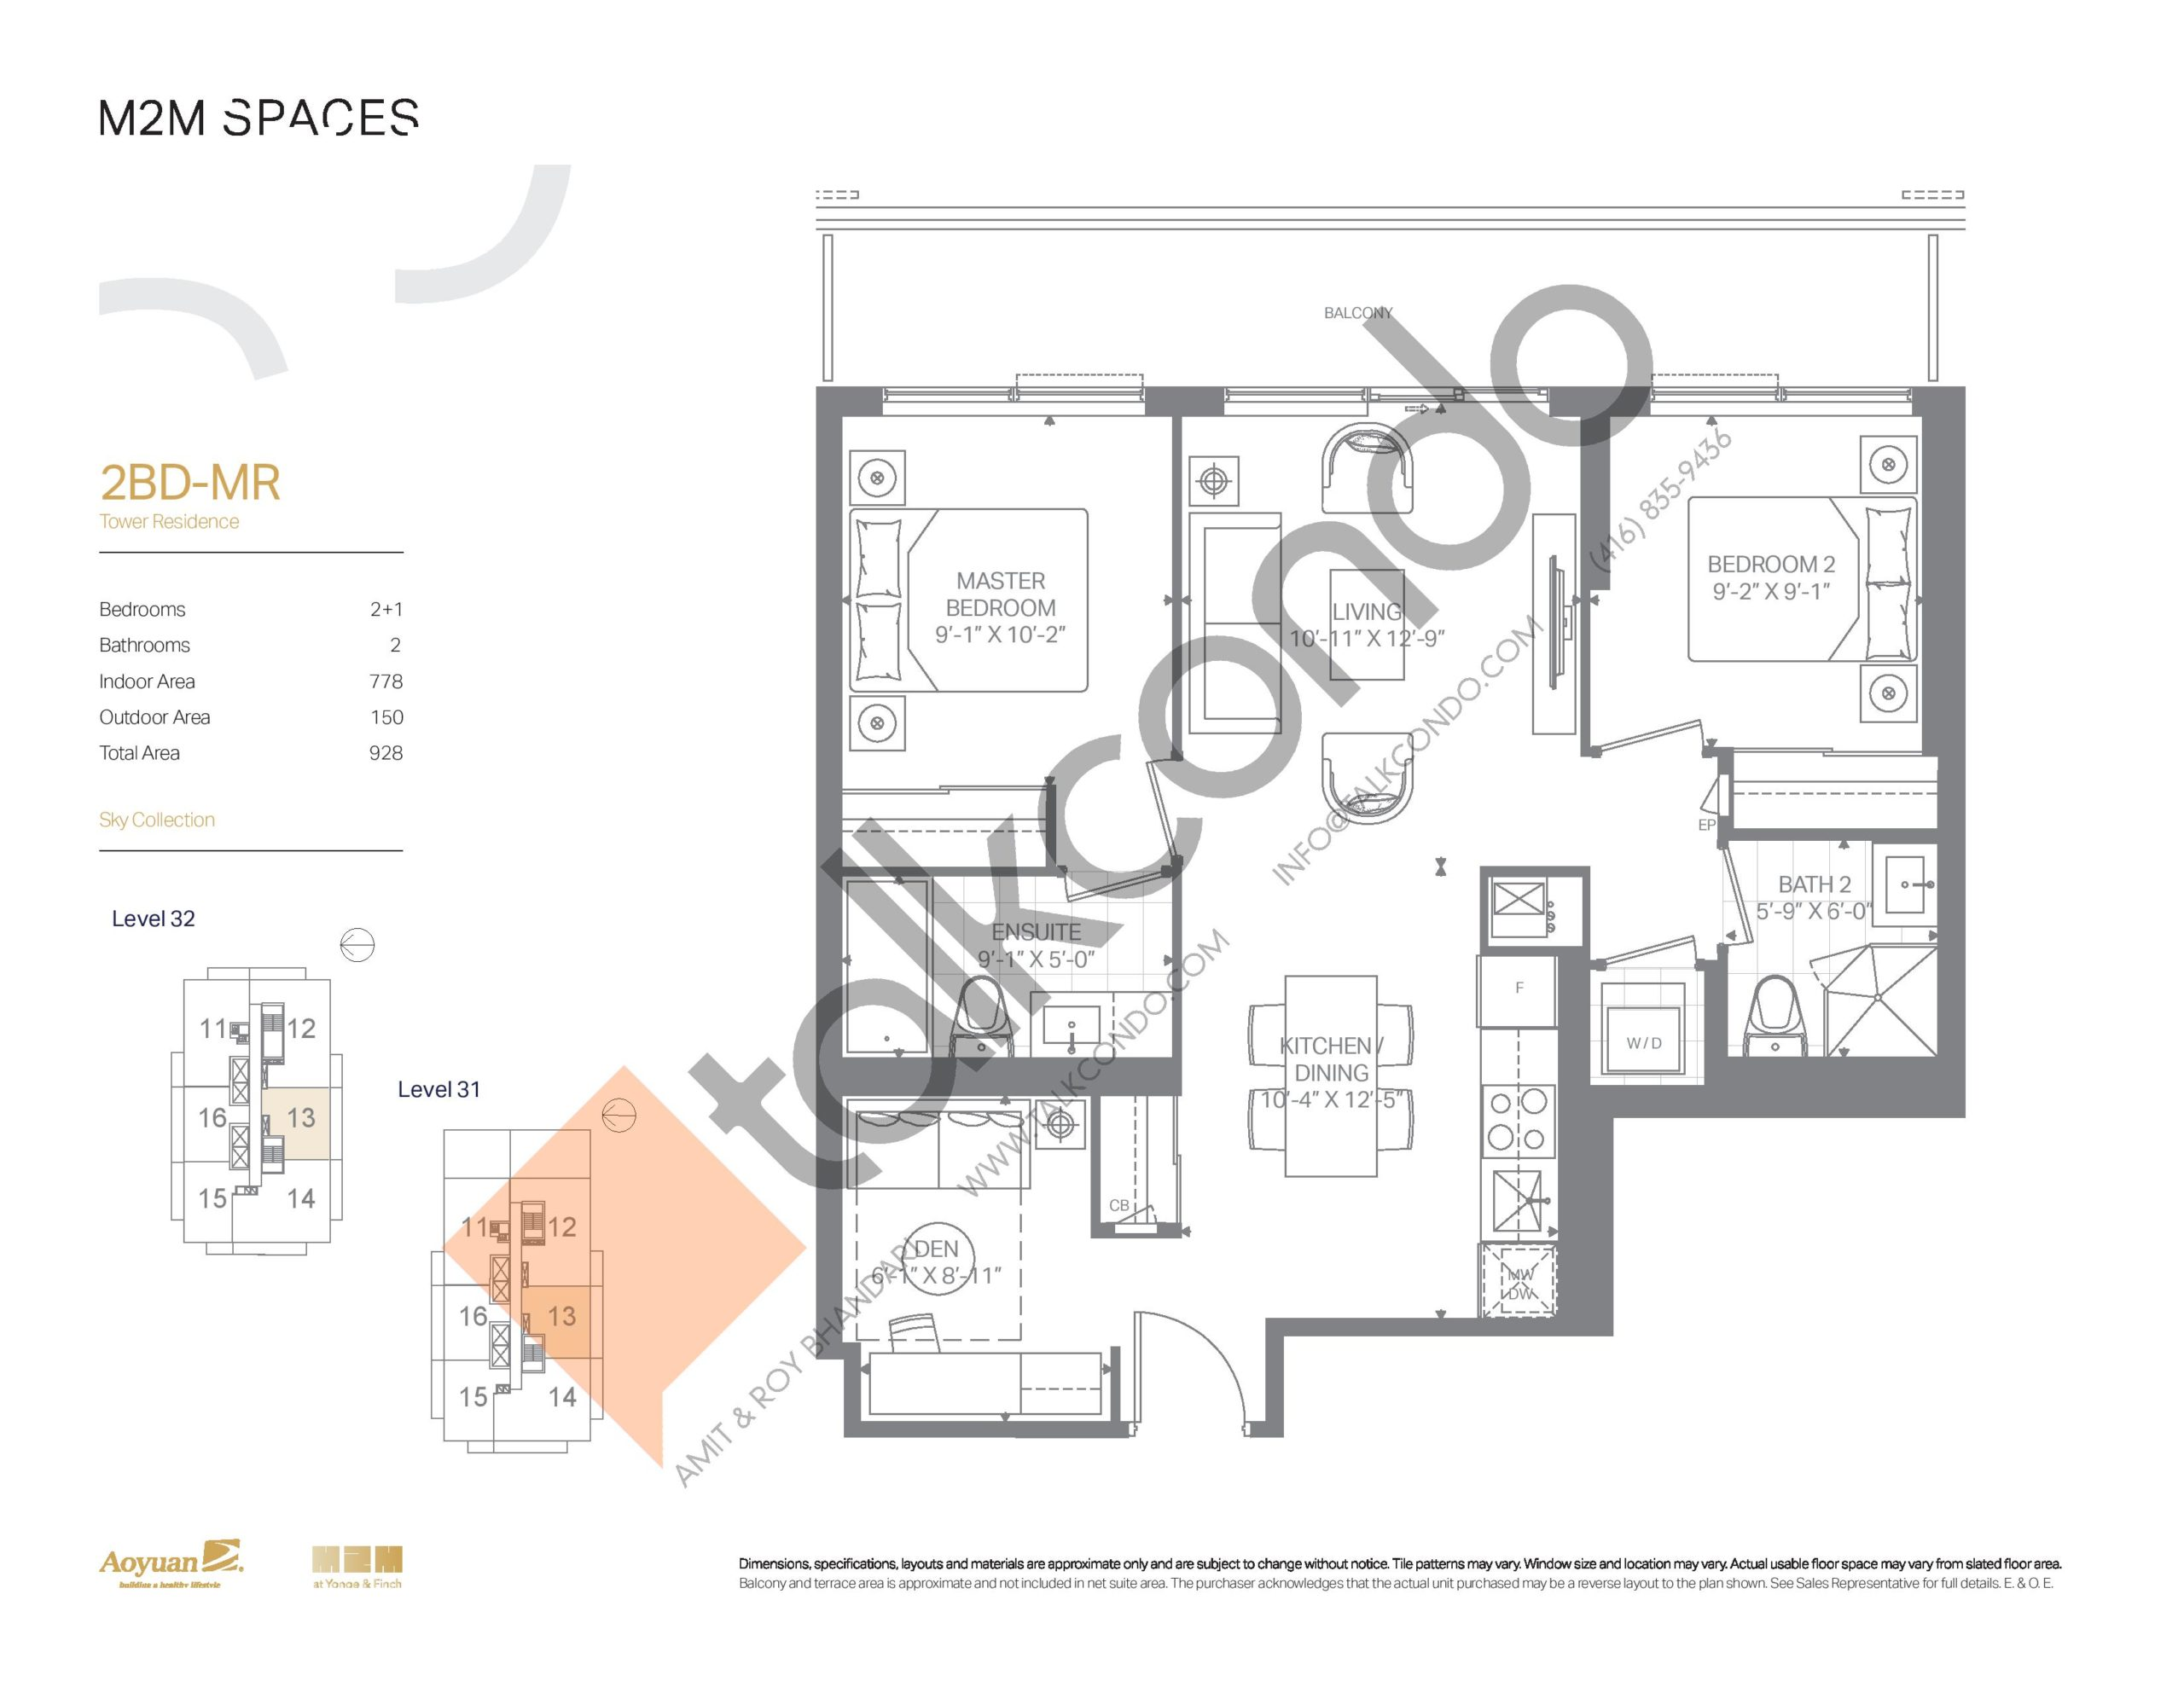 2BD-MR (Sky Collection) Floor Plan at M2M Spaces Condos - 778 sq.ft